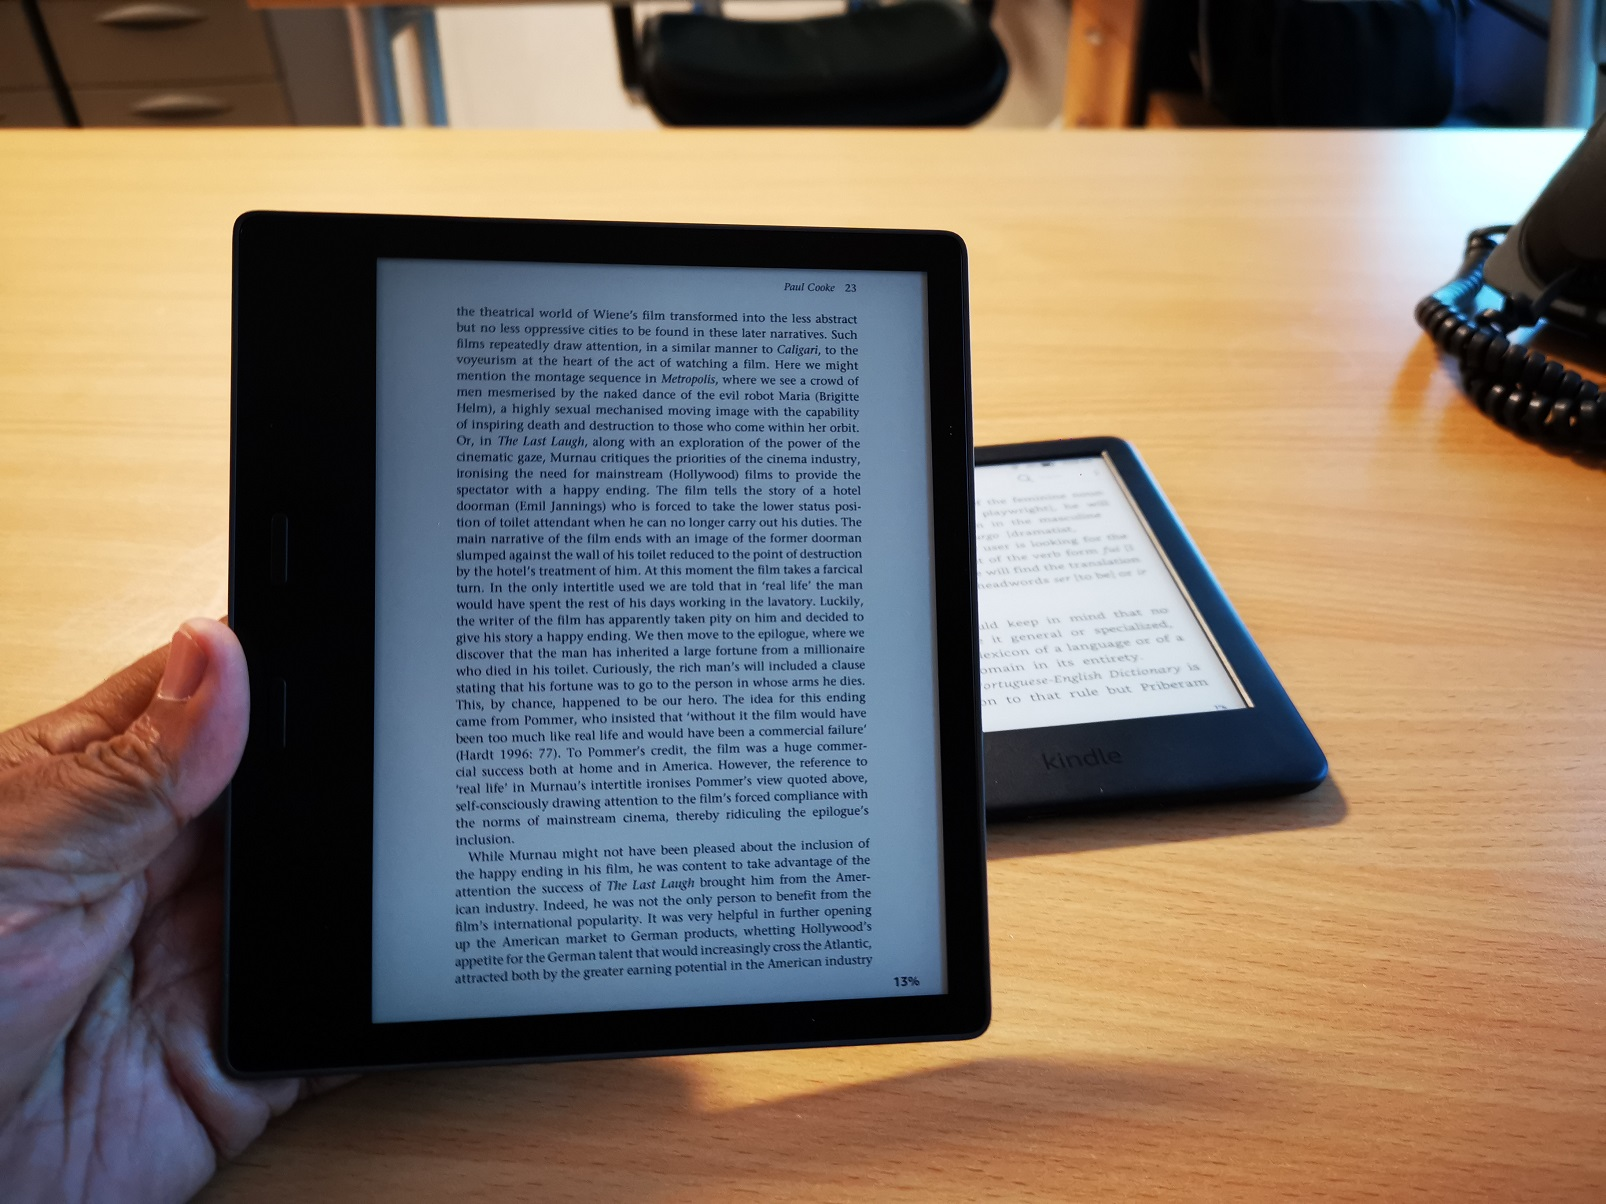 Kindle Oasis: The Kindle gets a designer touch!